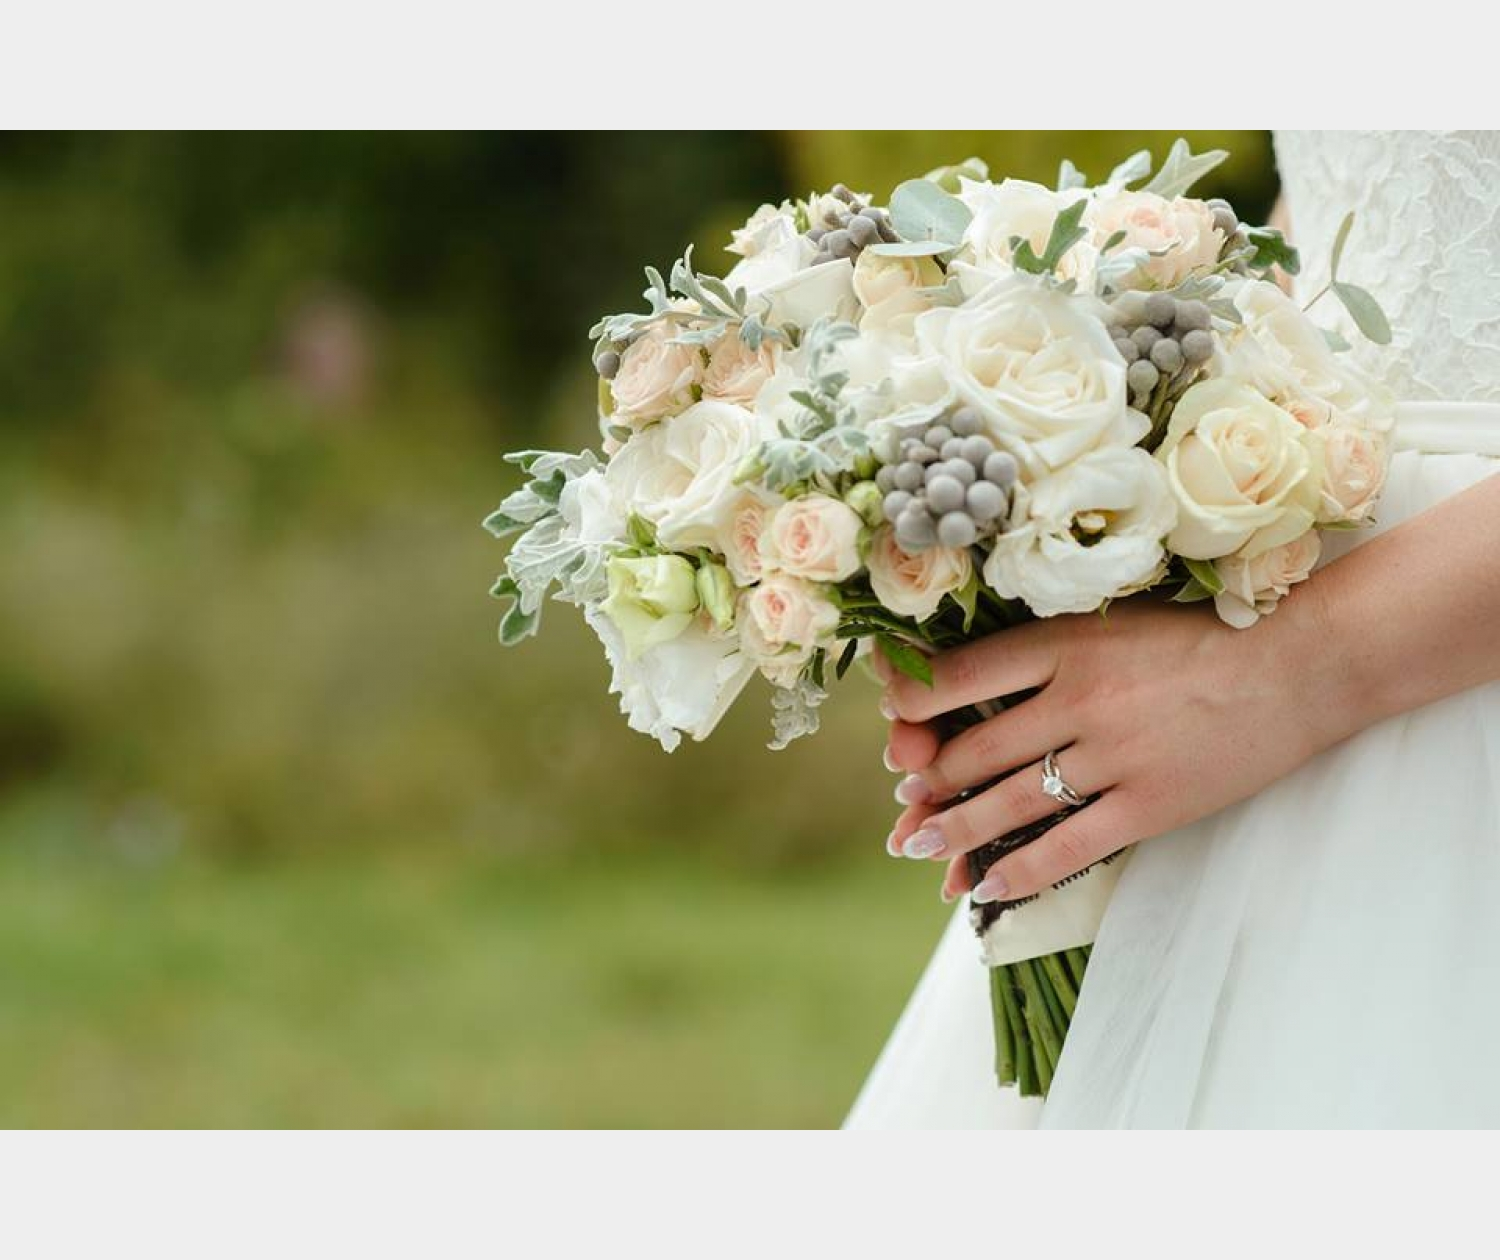 DOUBLETREE BY HILTON CHELTENHAM - WEDDING OPEN DAY